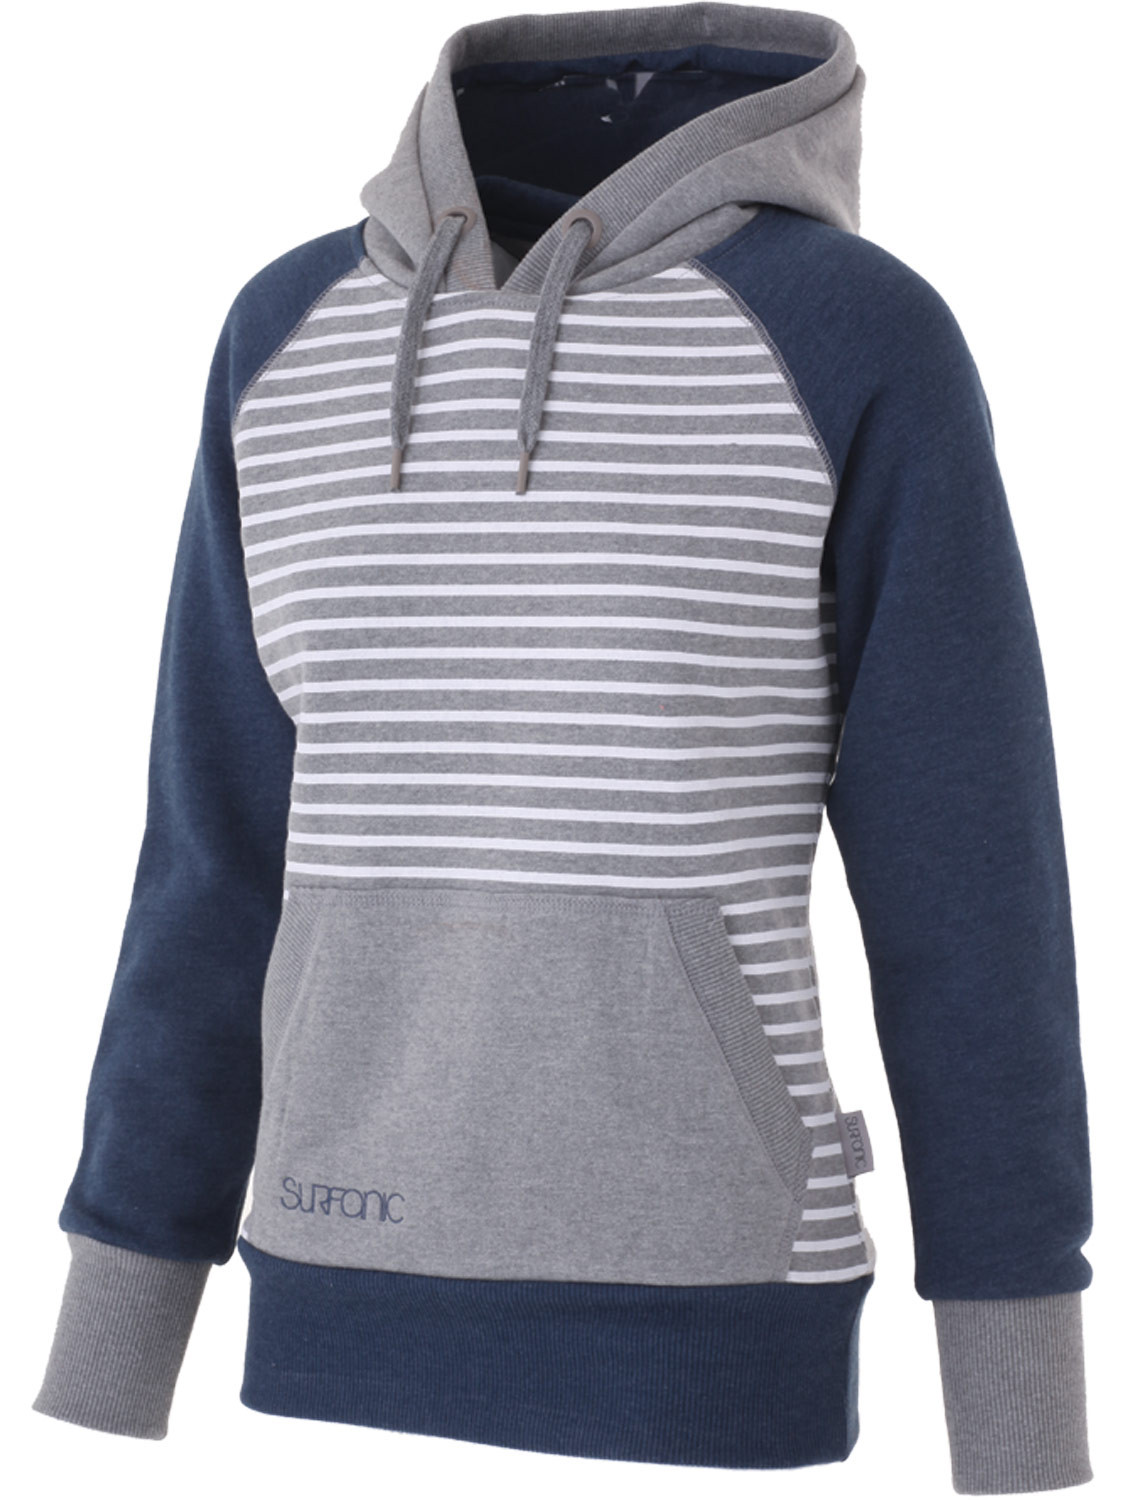 Discover our great range of hoodies and sweatshirts for women at bierek.tk Order online now for free next day delivery with click and collect. Discover our great range of hoodies and sweatshirts for women at bierek.tk Order online now for free next day delivery with click and collect.